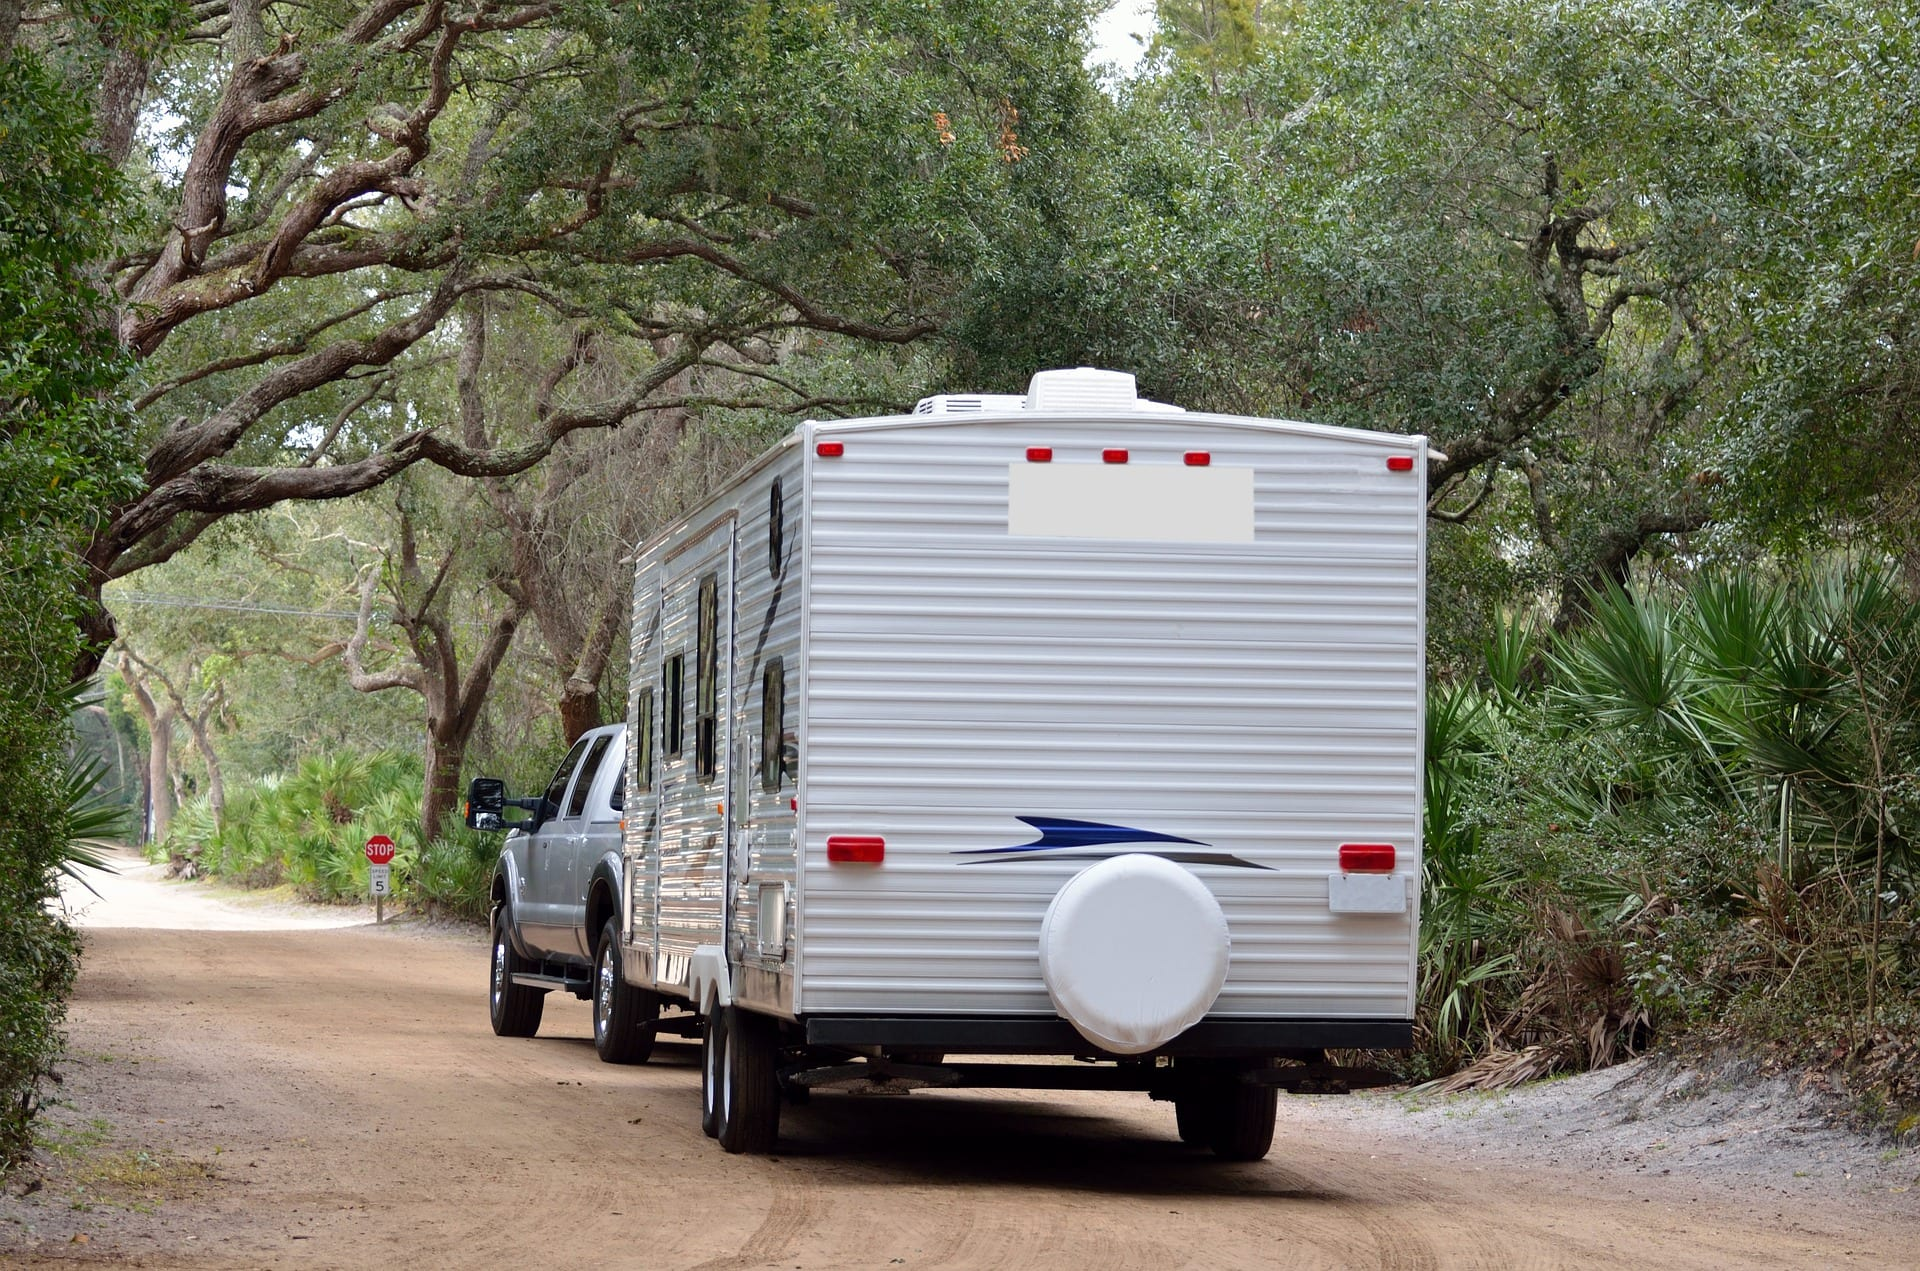 The back of an RV trailer being pulled by a pickup truck on a dirt road